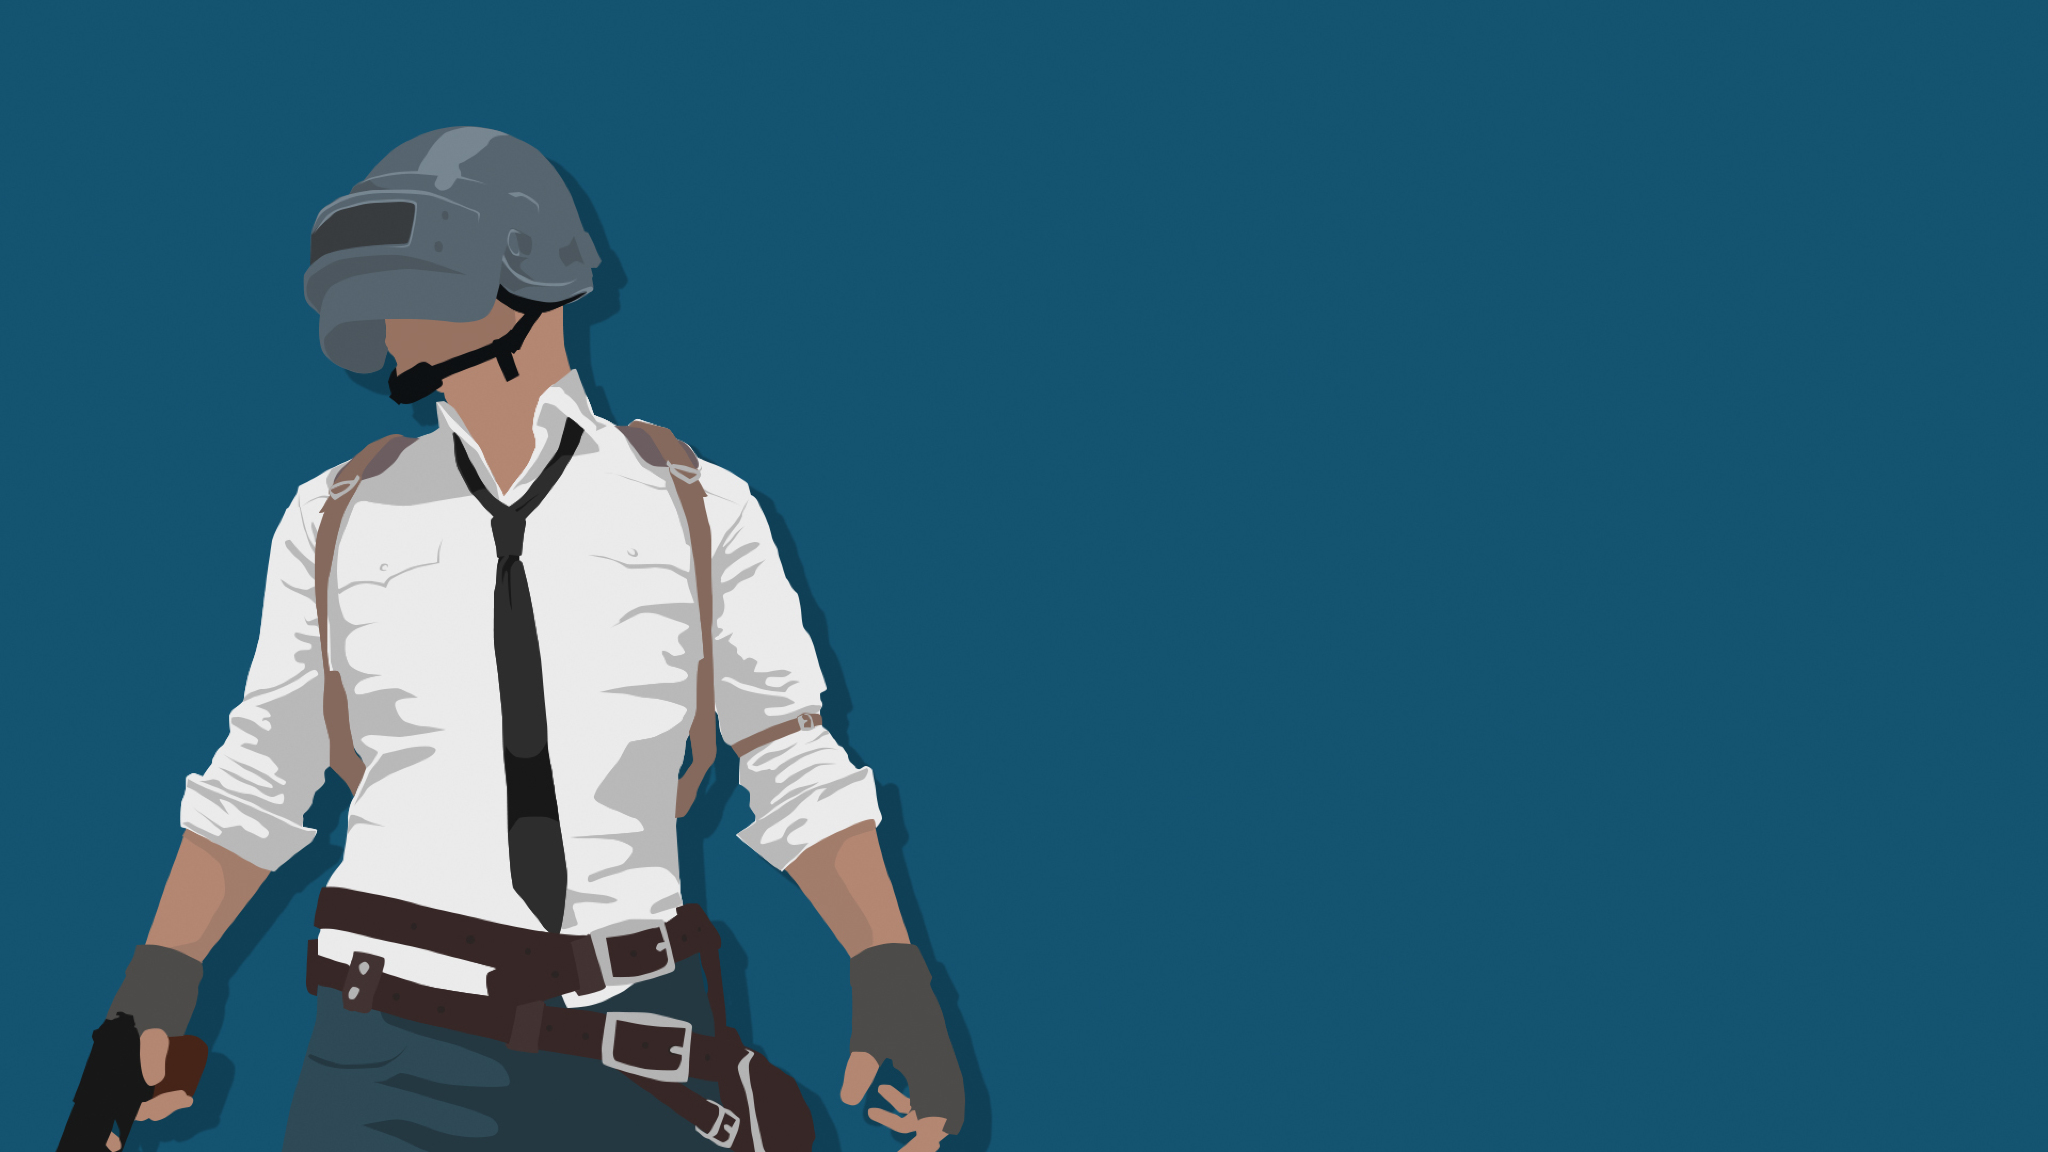 4k Ultra Hd Wallpapers Of Pubg The Best Hd Wallpaper: Pubg Minimal Art, Full HD Wallpaper